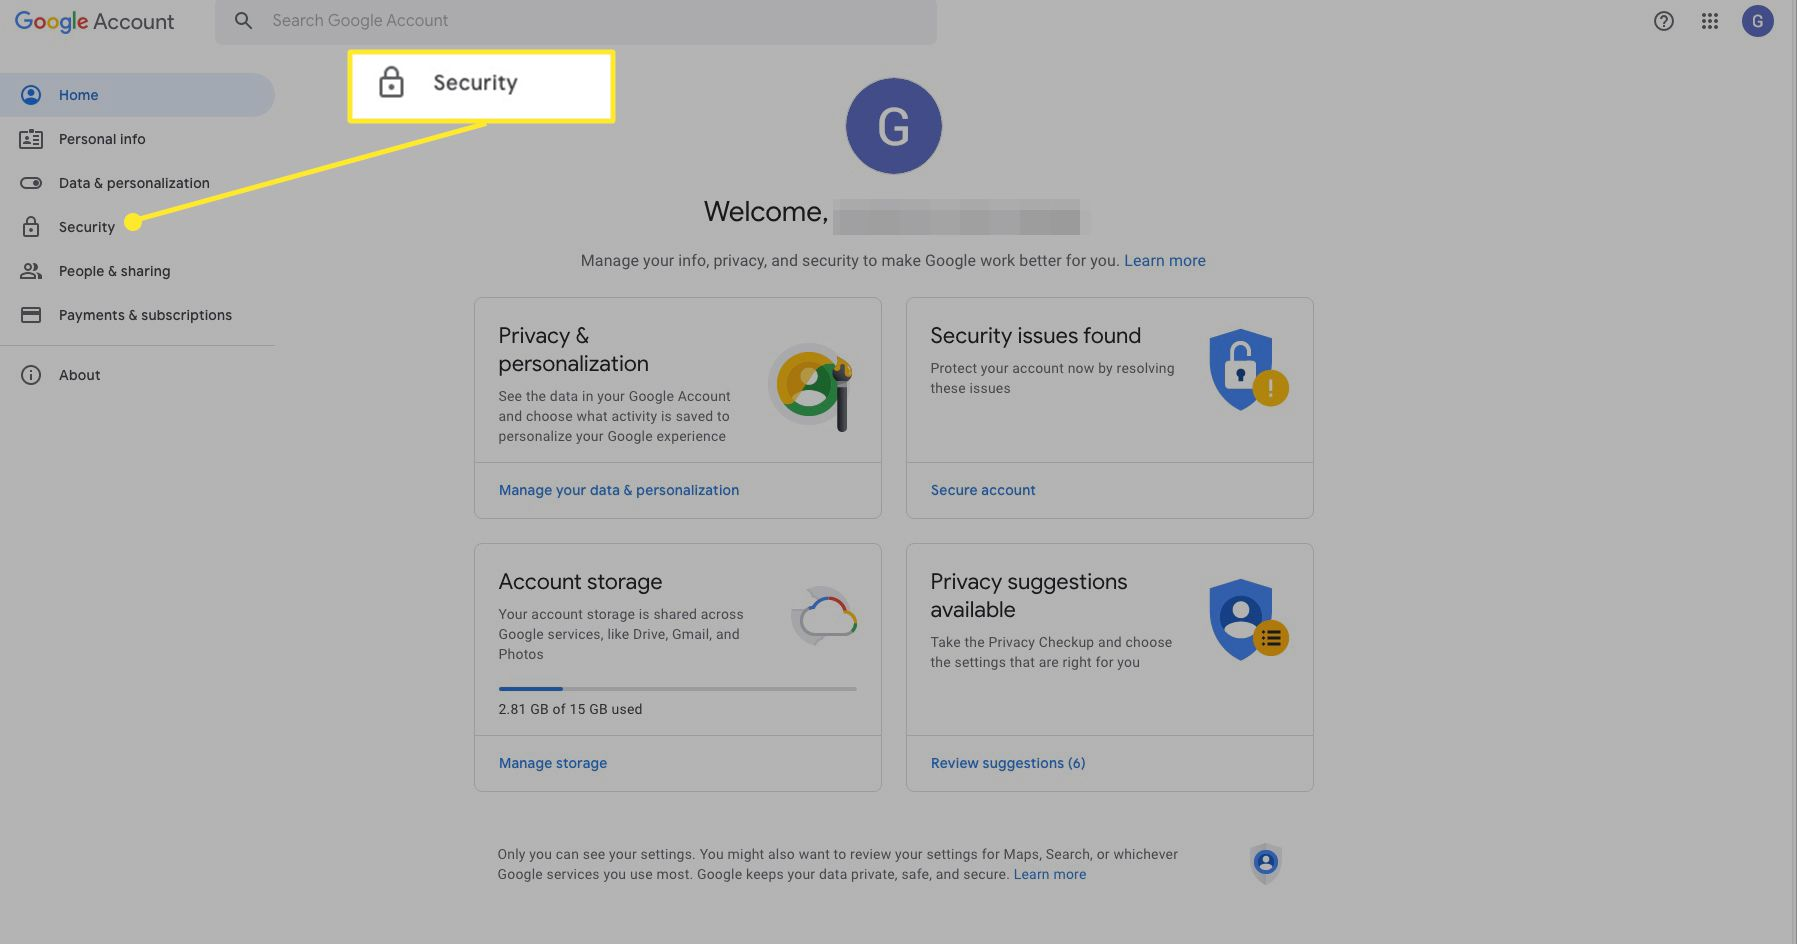 Google account settings with security highlighted